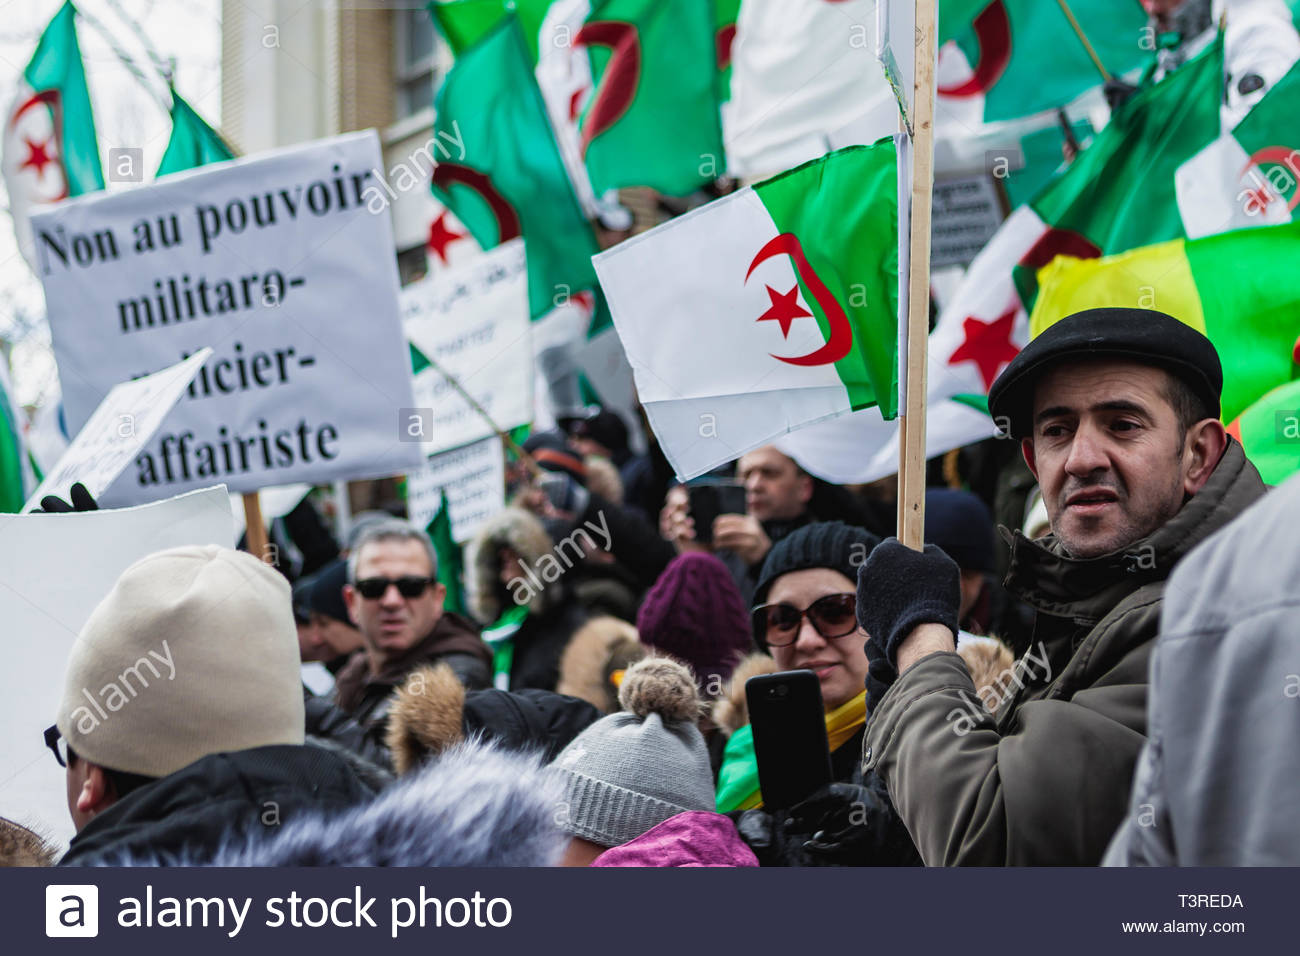 Nearly 2,000 people with flags and placards moved, during the demonstration of the Algerian diaspora demanding the departure of President Bouteflika.  - Stock Image